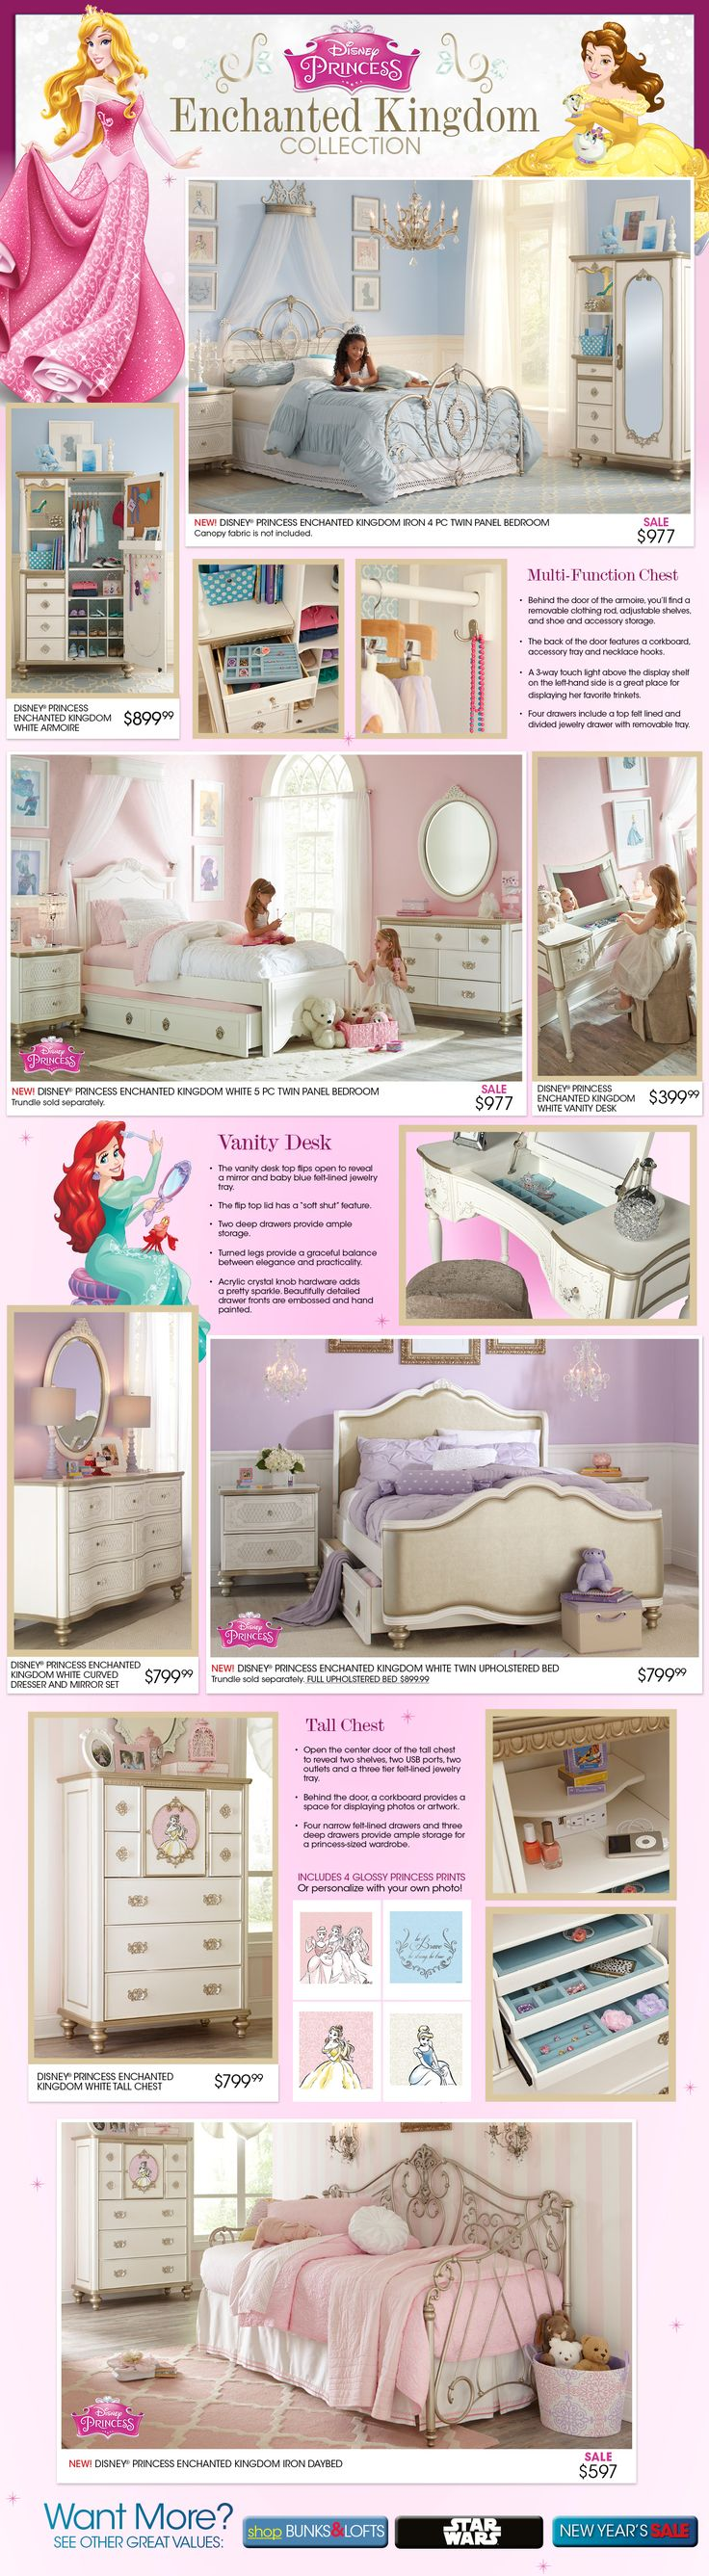 Kids Bedroom Furniture 17 Best Ideas About Kids Bedroom Furniture Design On Pinterest